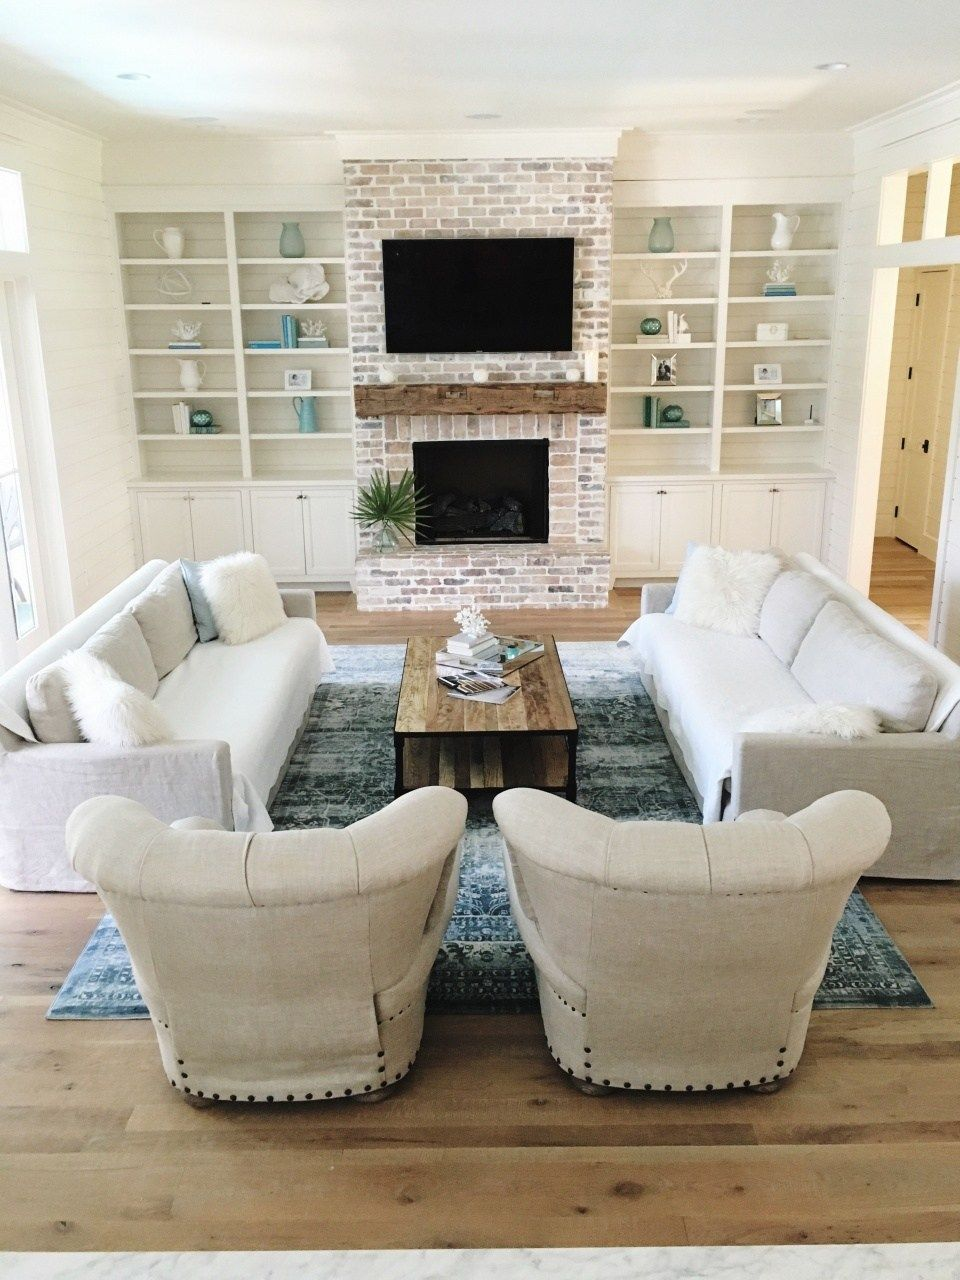 Awkward Living Room Layout With Corner Fireplace 20 Cozy Corner Fireplace Ideas For Your Living Roo Elegant Living Room Luxury Living Room Small Living Rooms